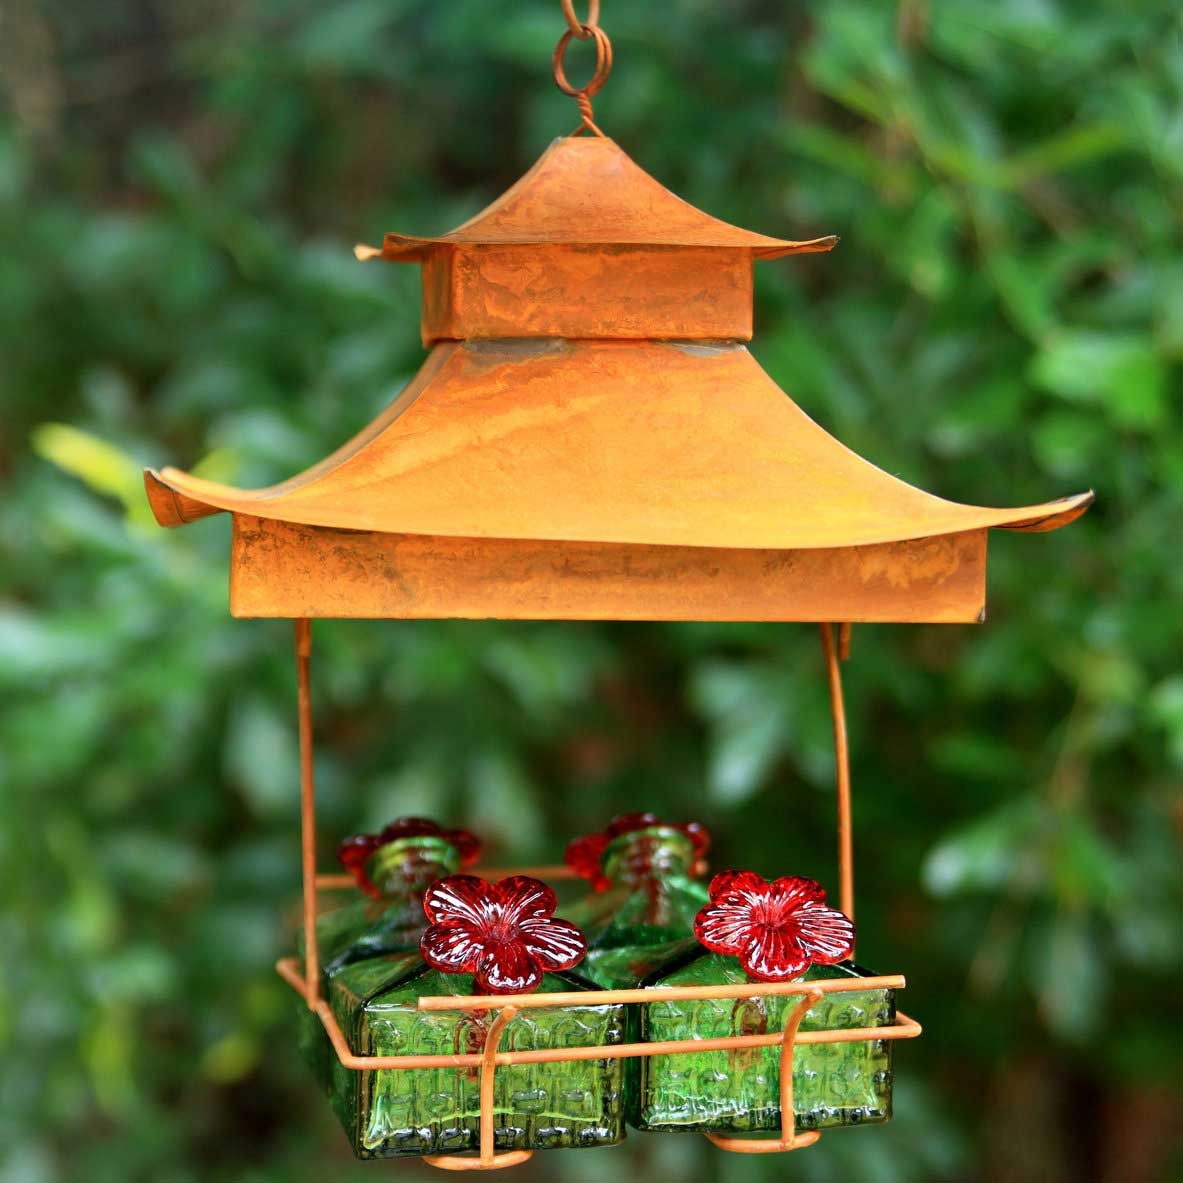 like hummers glass hummingbird crazy feeder we attracts round hummingbirds love products humingbird